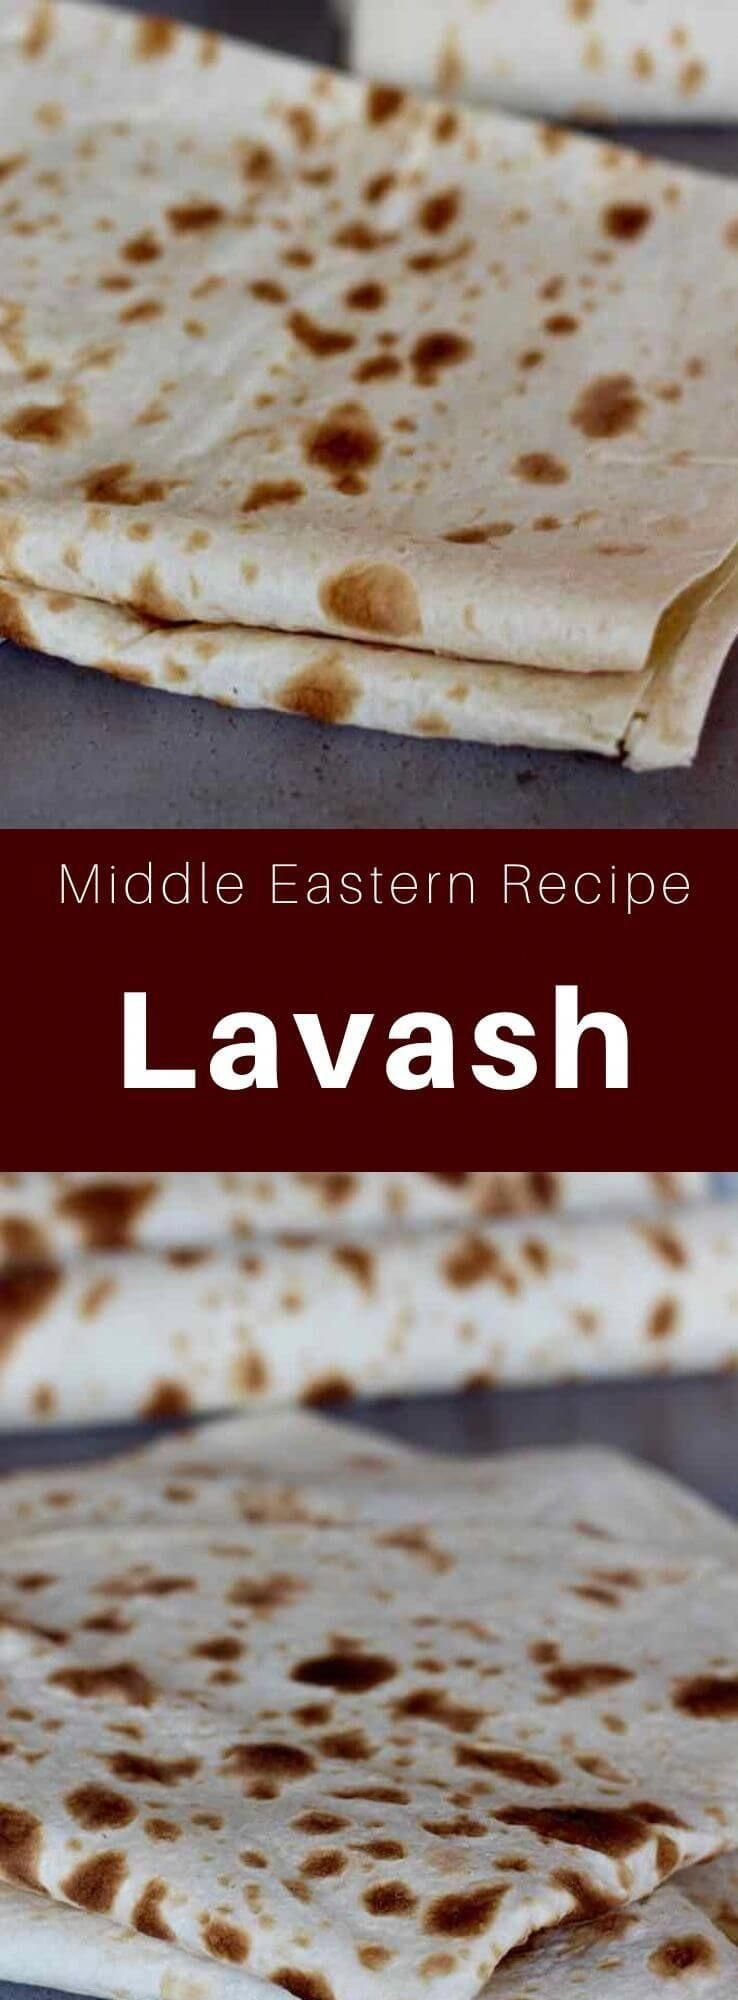 Lavash is an unleavened flatbread common to Armenia and most of the Middle East, Transcaucasia, and Western Asia regions. #MiddleEast #MiddleEastern #Armenia #ArmenianCuisine #ArmenianRecipe #WorldCuisine #196flavors #BestKetoBread